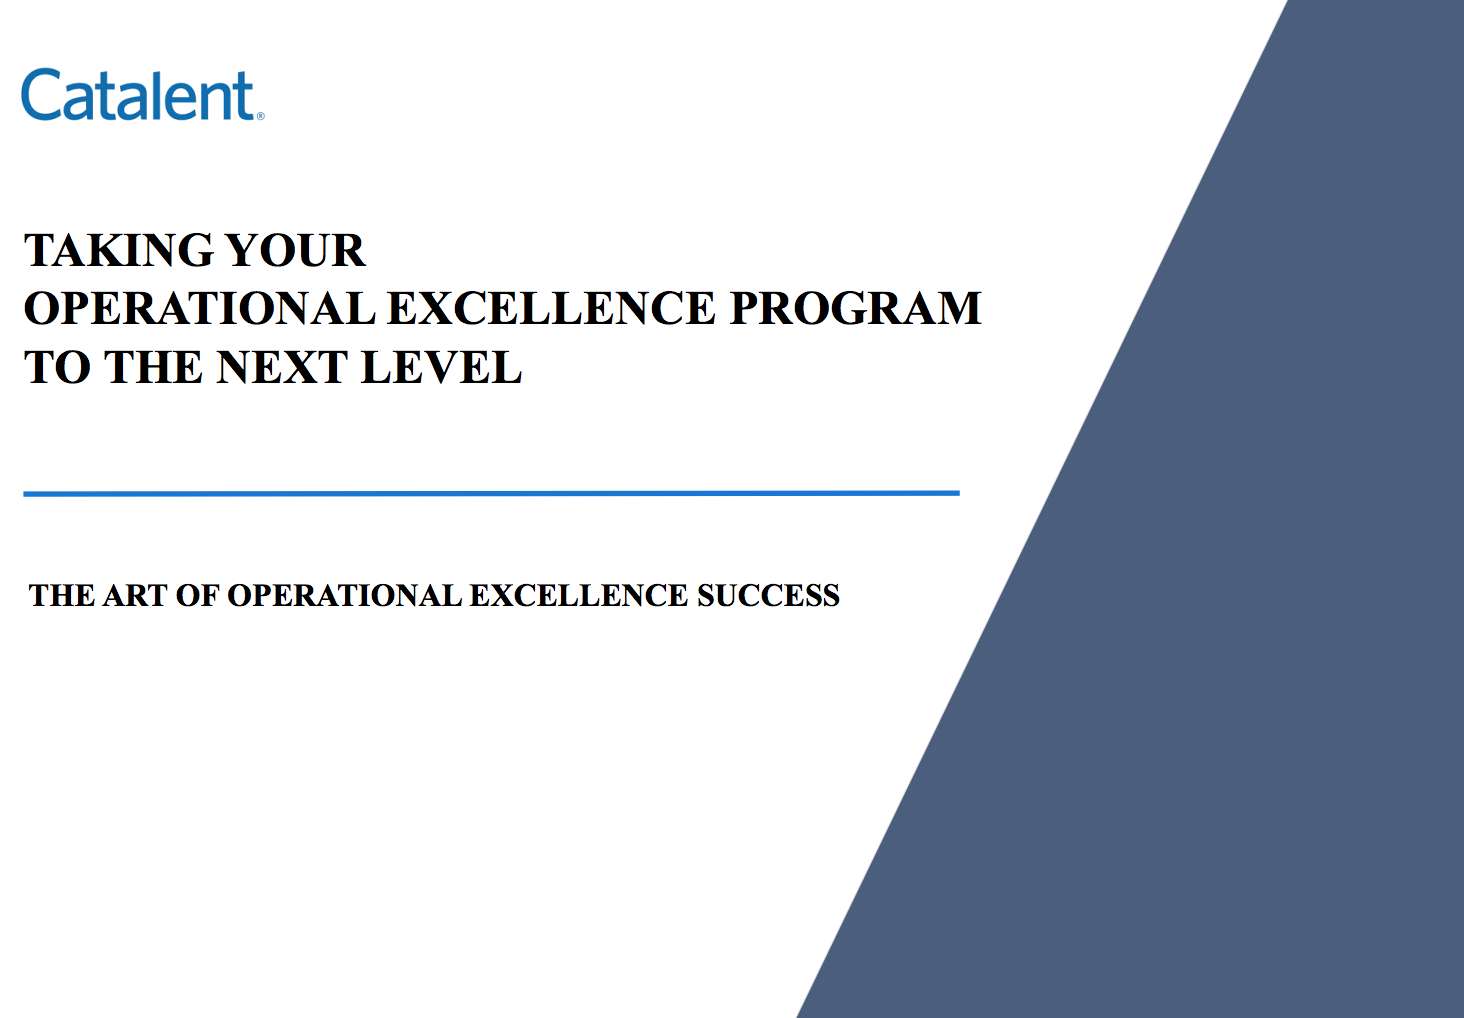 Taking your Operational Excellence Program to the Next Level